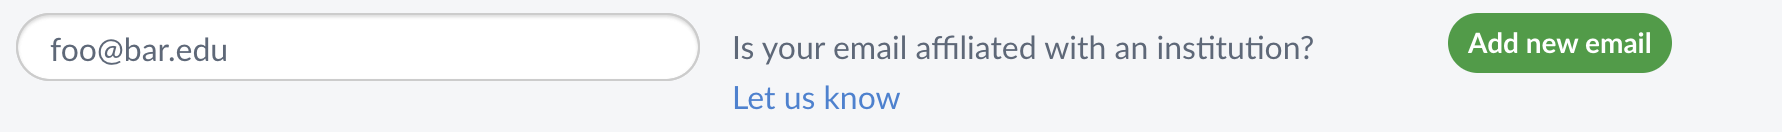 New-email.png